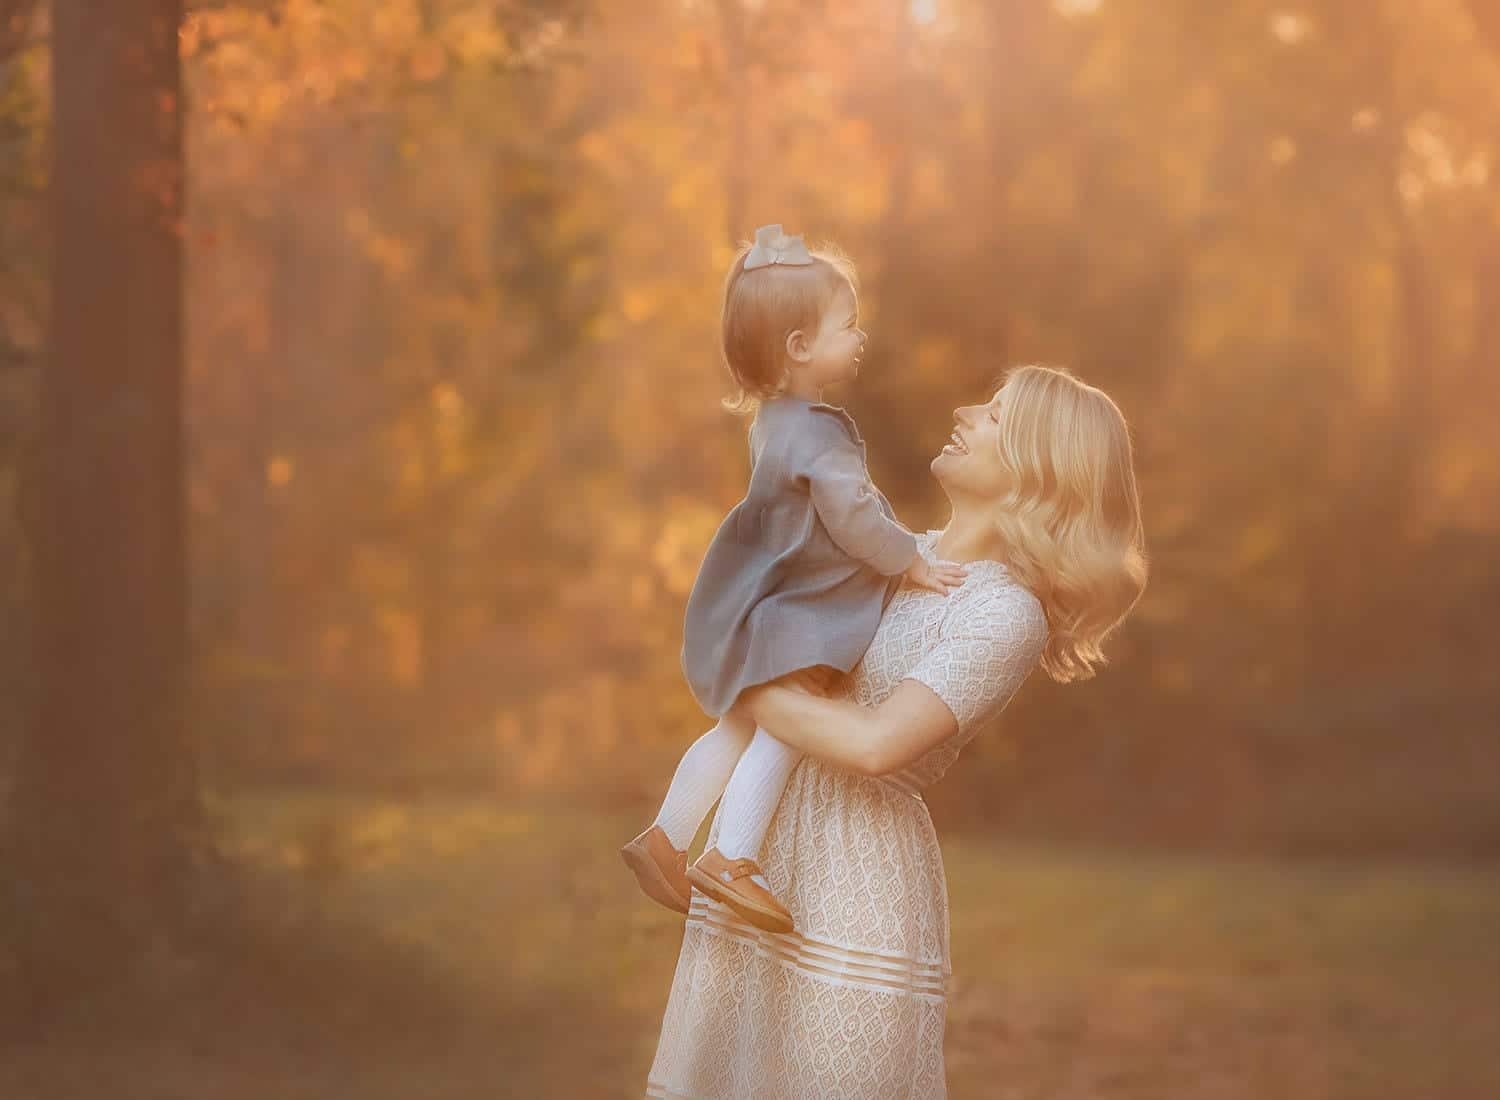 Fine art photo of mother with child